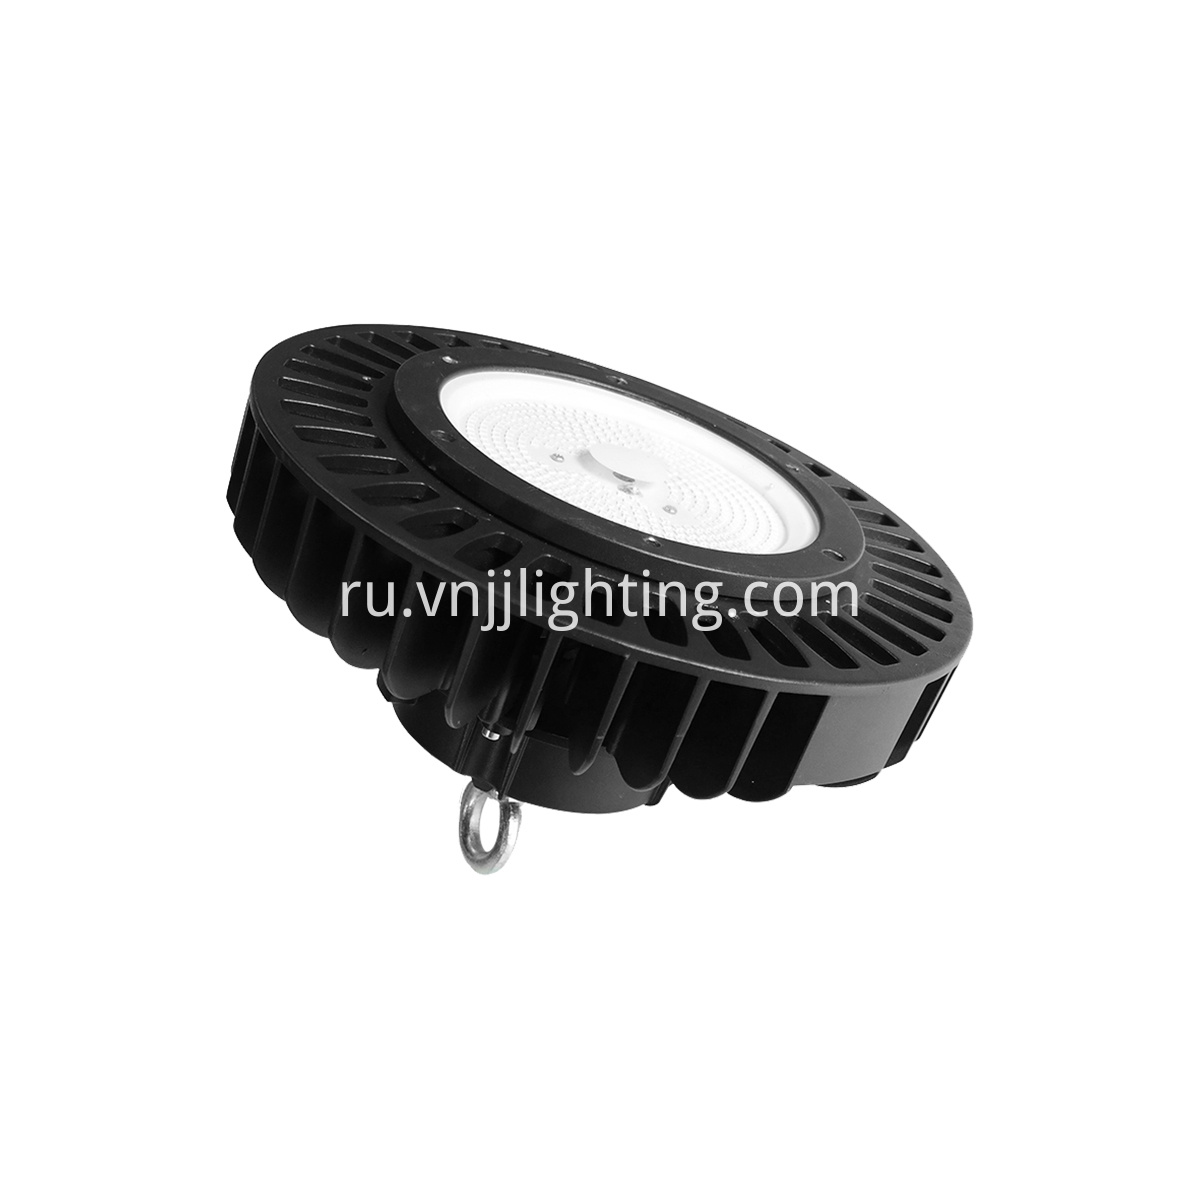 UFO LED High Bay Light 4